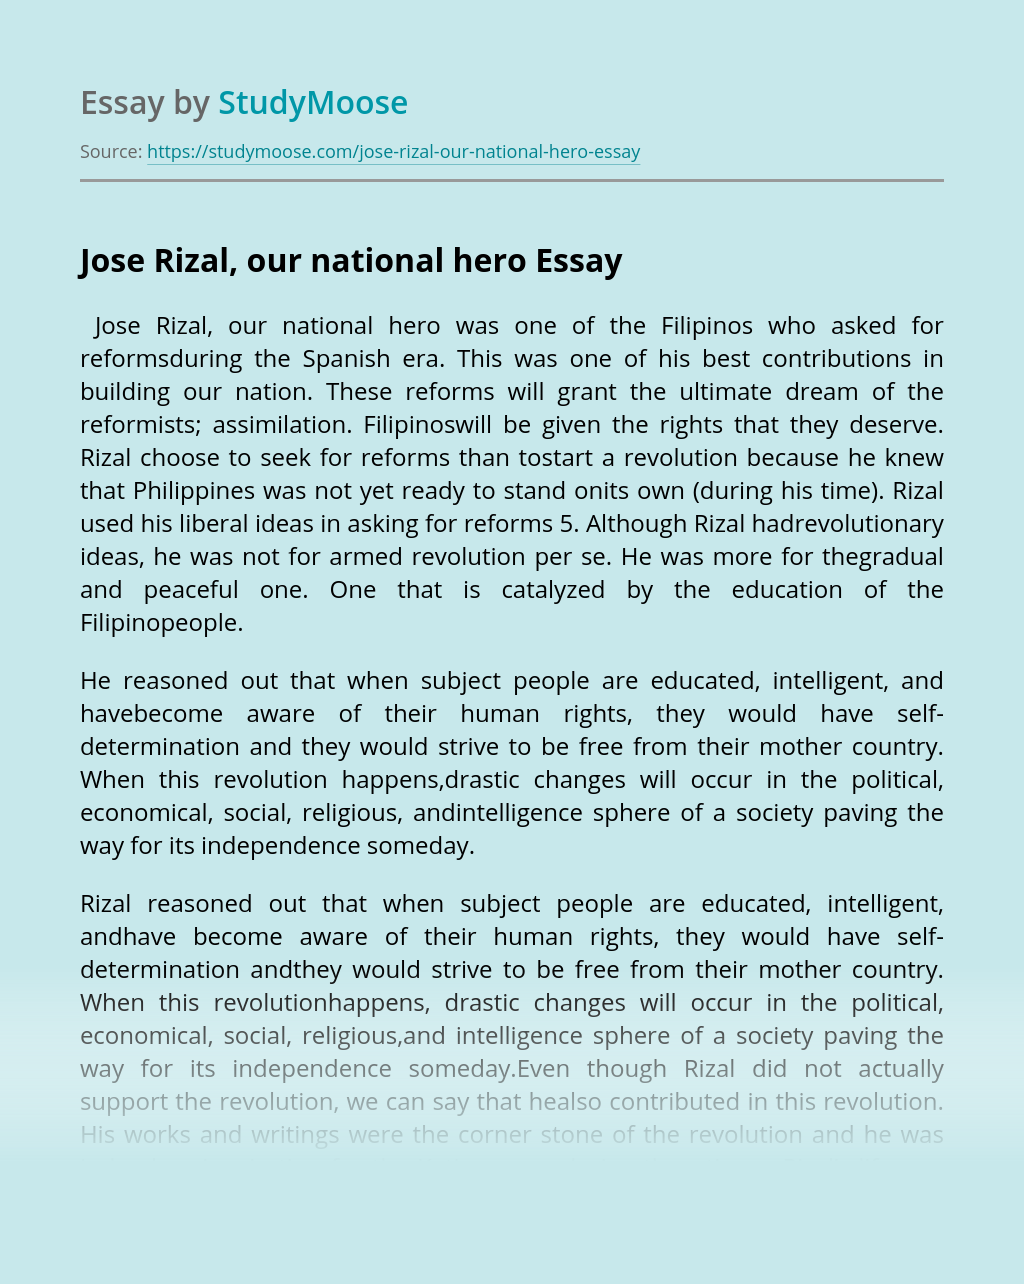 Jose Rizal, our national hero